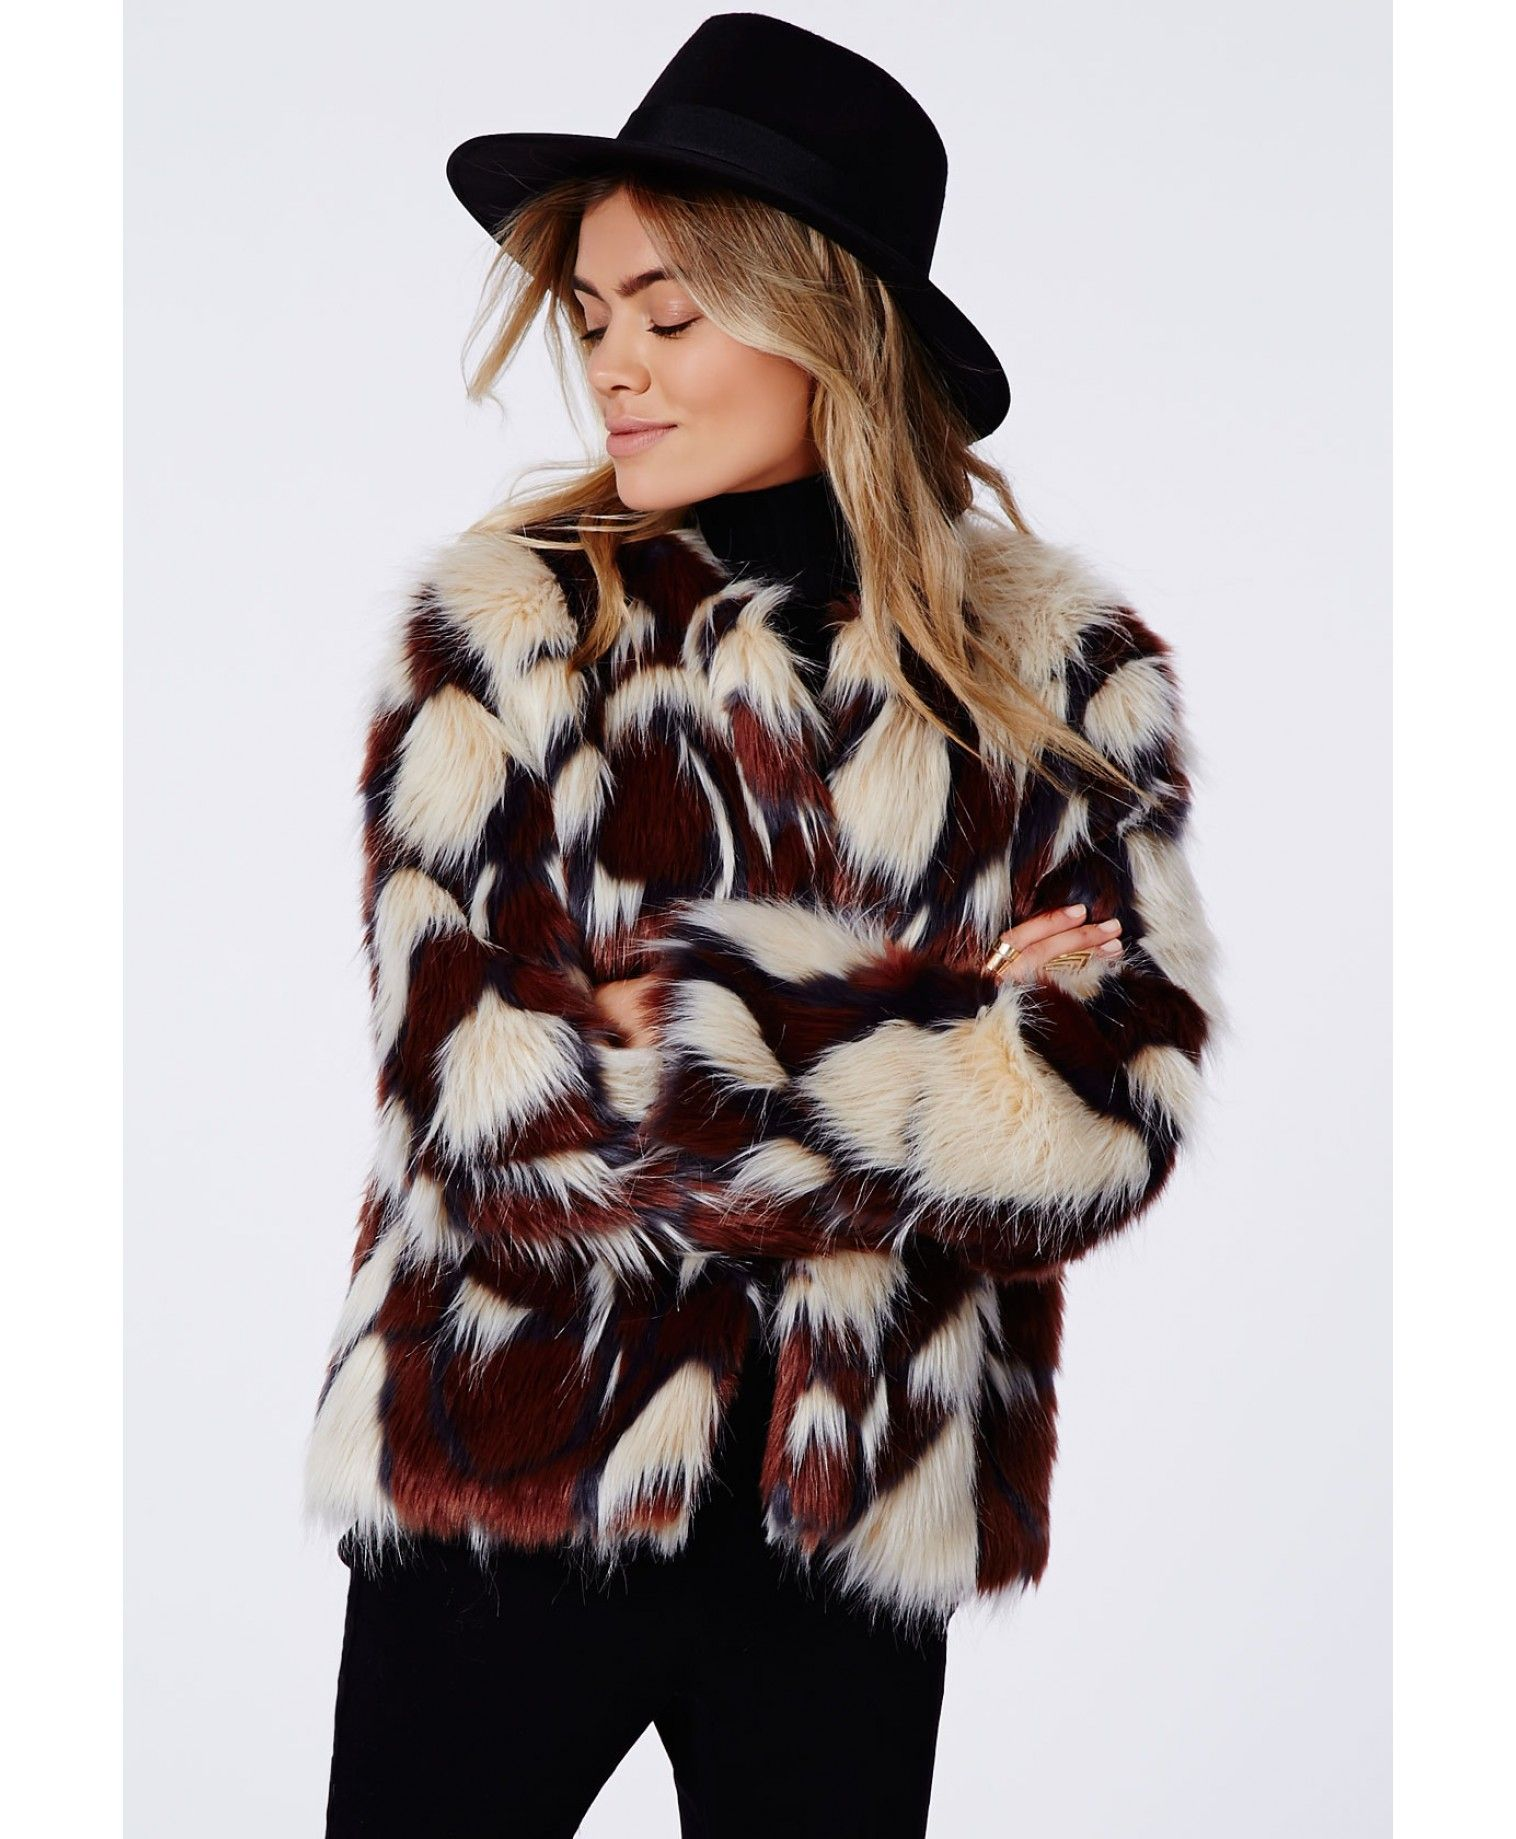 15 Faux Fur Pieces That Are Better Than the RealThing